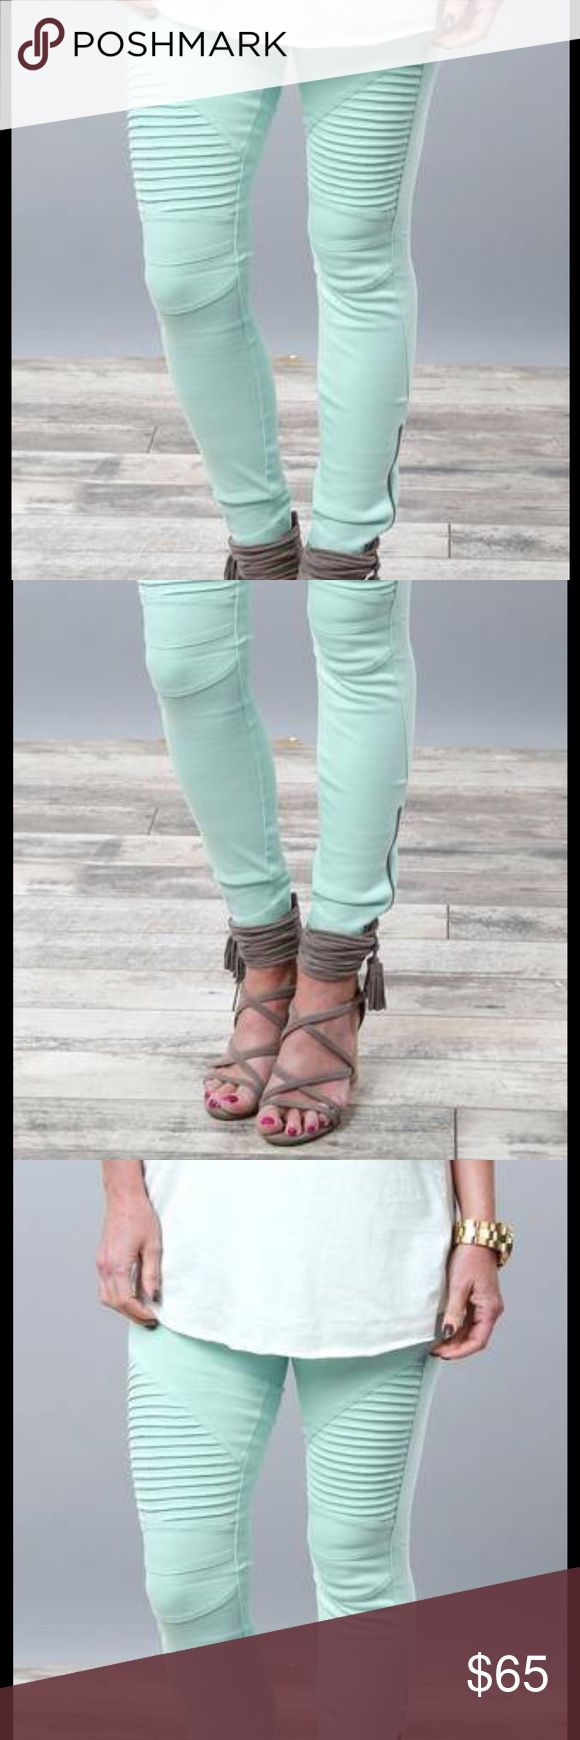 Mint Moto Jeggings! Zipper by the ankle ❤️ They sell out quickly. Perfect for family holiday gatherings;) small- size 00-5 medium- size 6-9 large size 10-12 supportlocalbusinesses #shoplocal #shopping #deal #motoleggings #leggings #leggingaddict #leggingsarepants #leggingseason #love  #shoplocal #feelingpretty #deal #boutique #boutiqueshopping #giveaway #shopping #supportlocalbusinesses #trend #Fashion #instyle #trending #boutiquefashion #fastshipping  #available Pants Ankle & Cropped